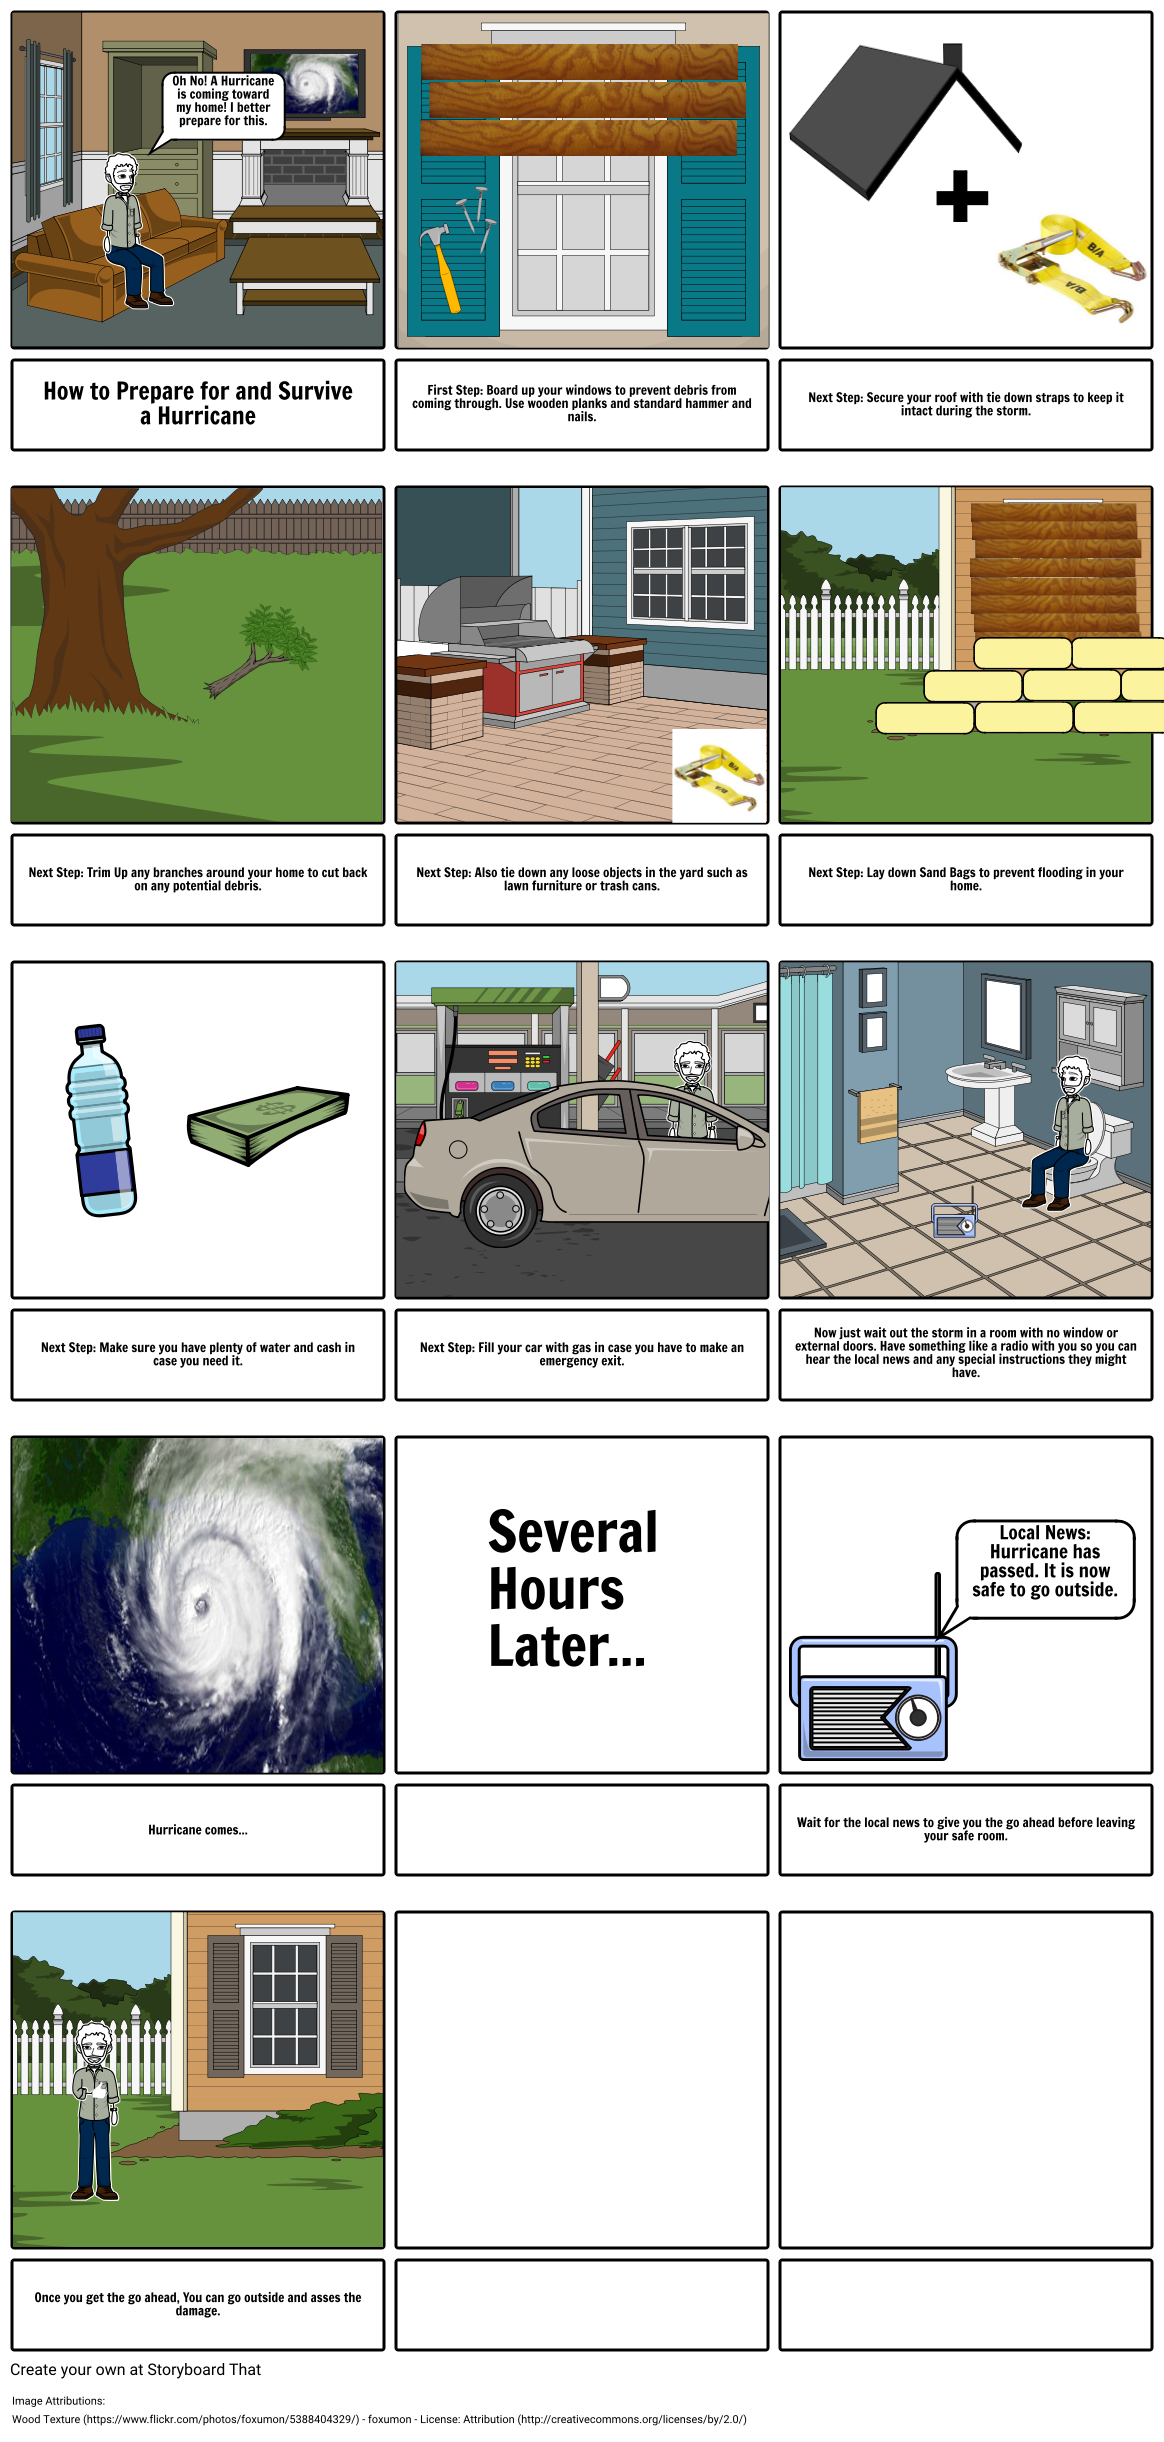 How to prepare for and survive a hurricane.